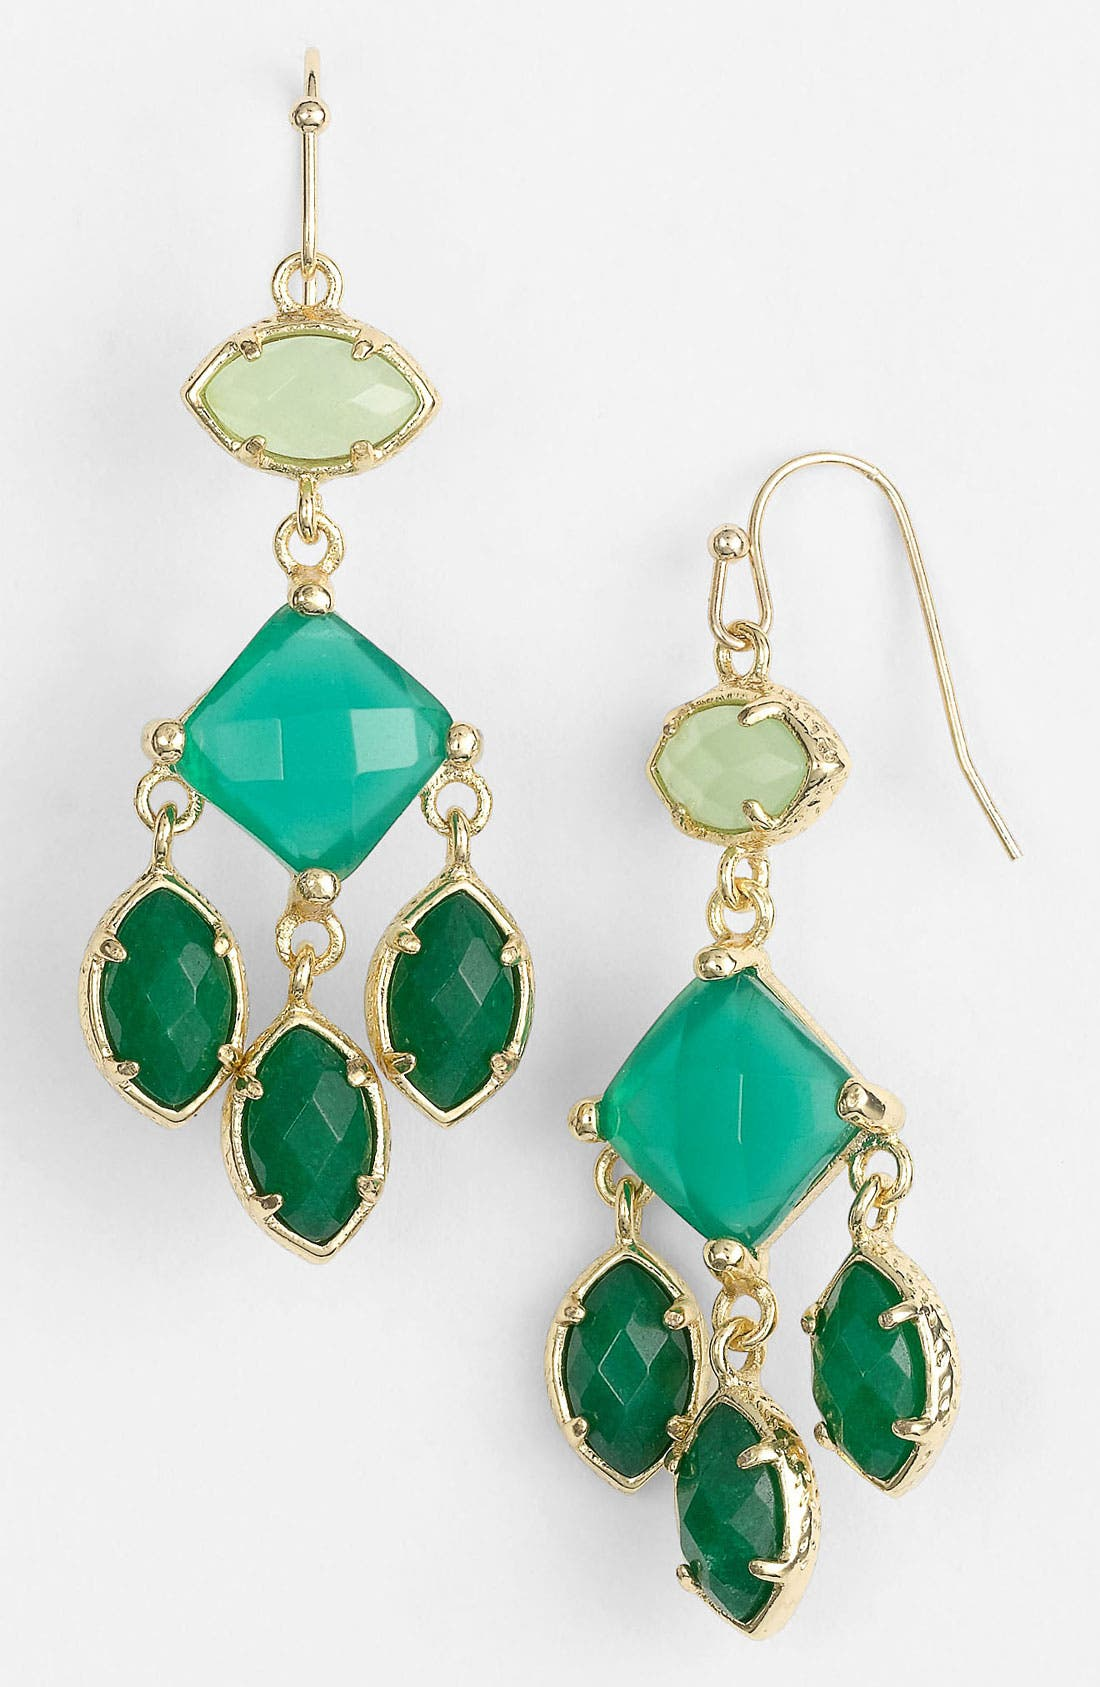 Main Image - Kendra Scott 'Evelyn' Chandelier Earrings